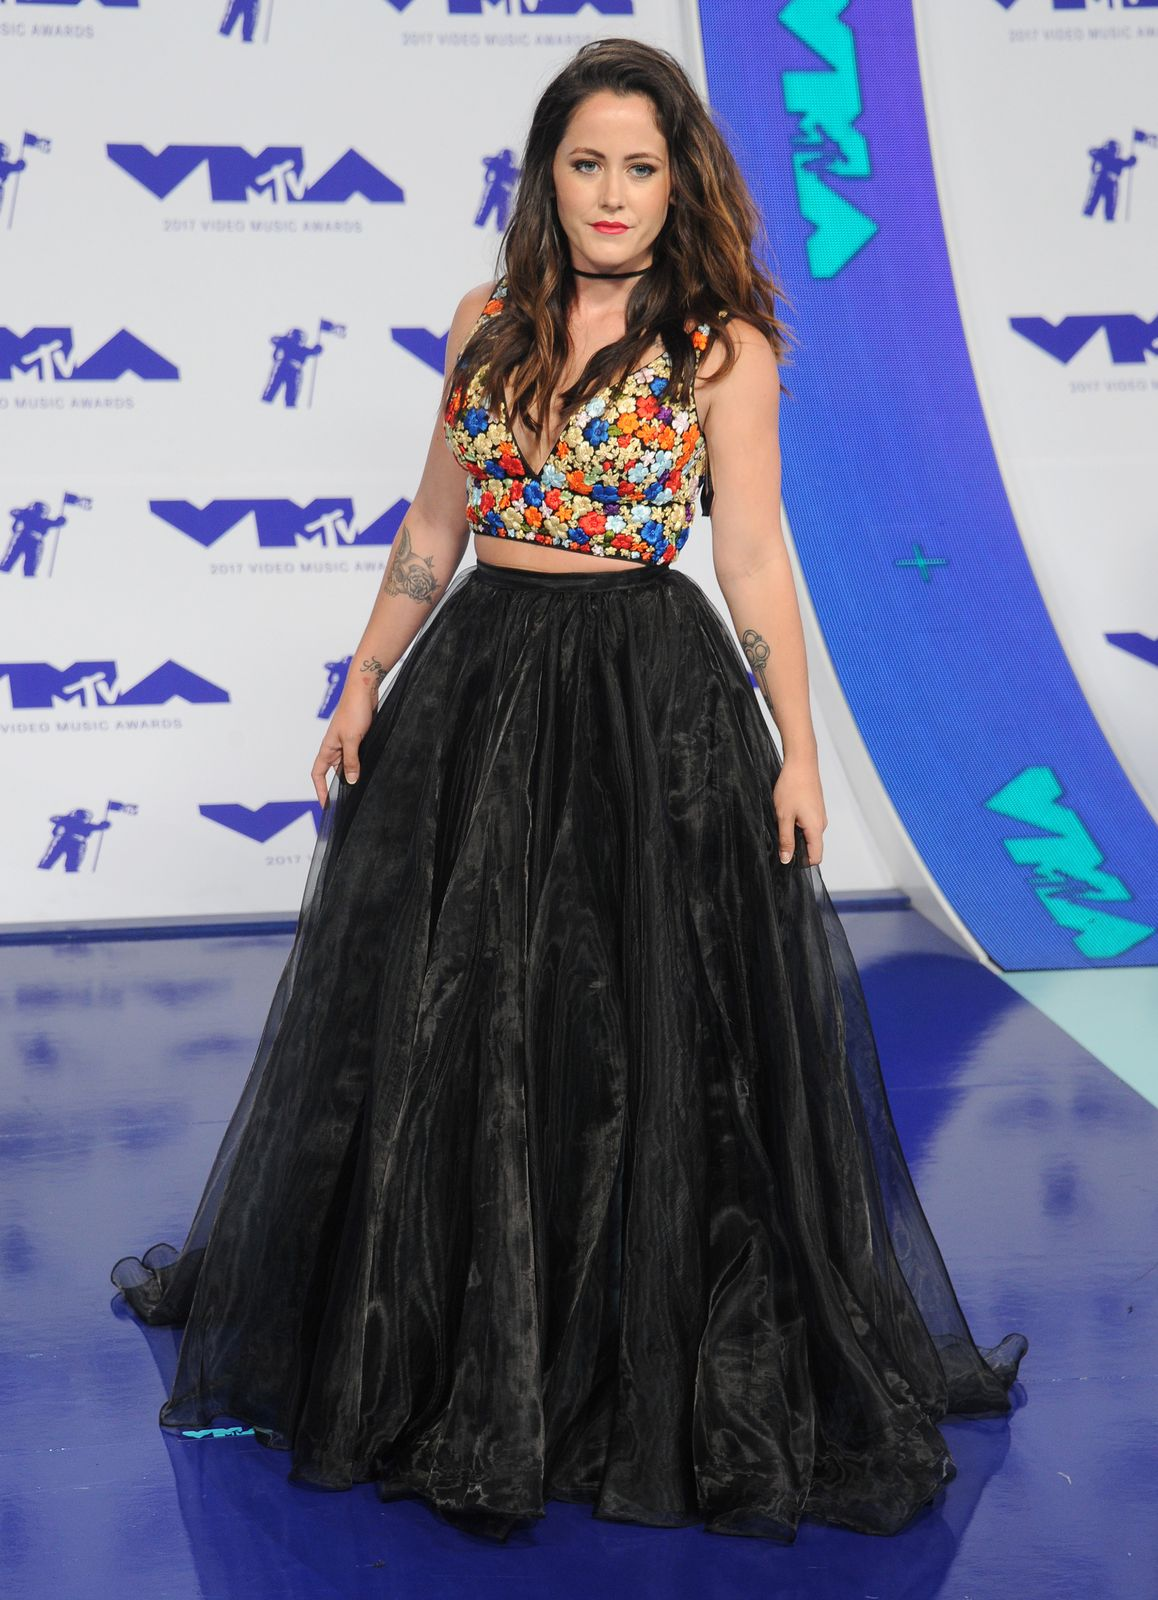 Jenelle Evans arrives at the 2017 MTV Video Music Awards at The Forum on August 27, 2017 in Inglewood, California | Photo: Getty Images